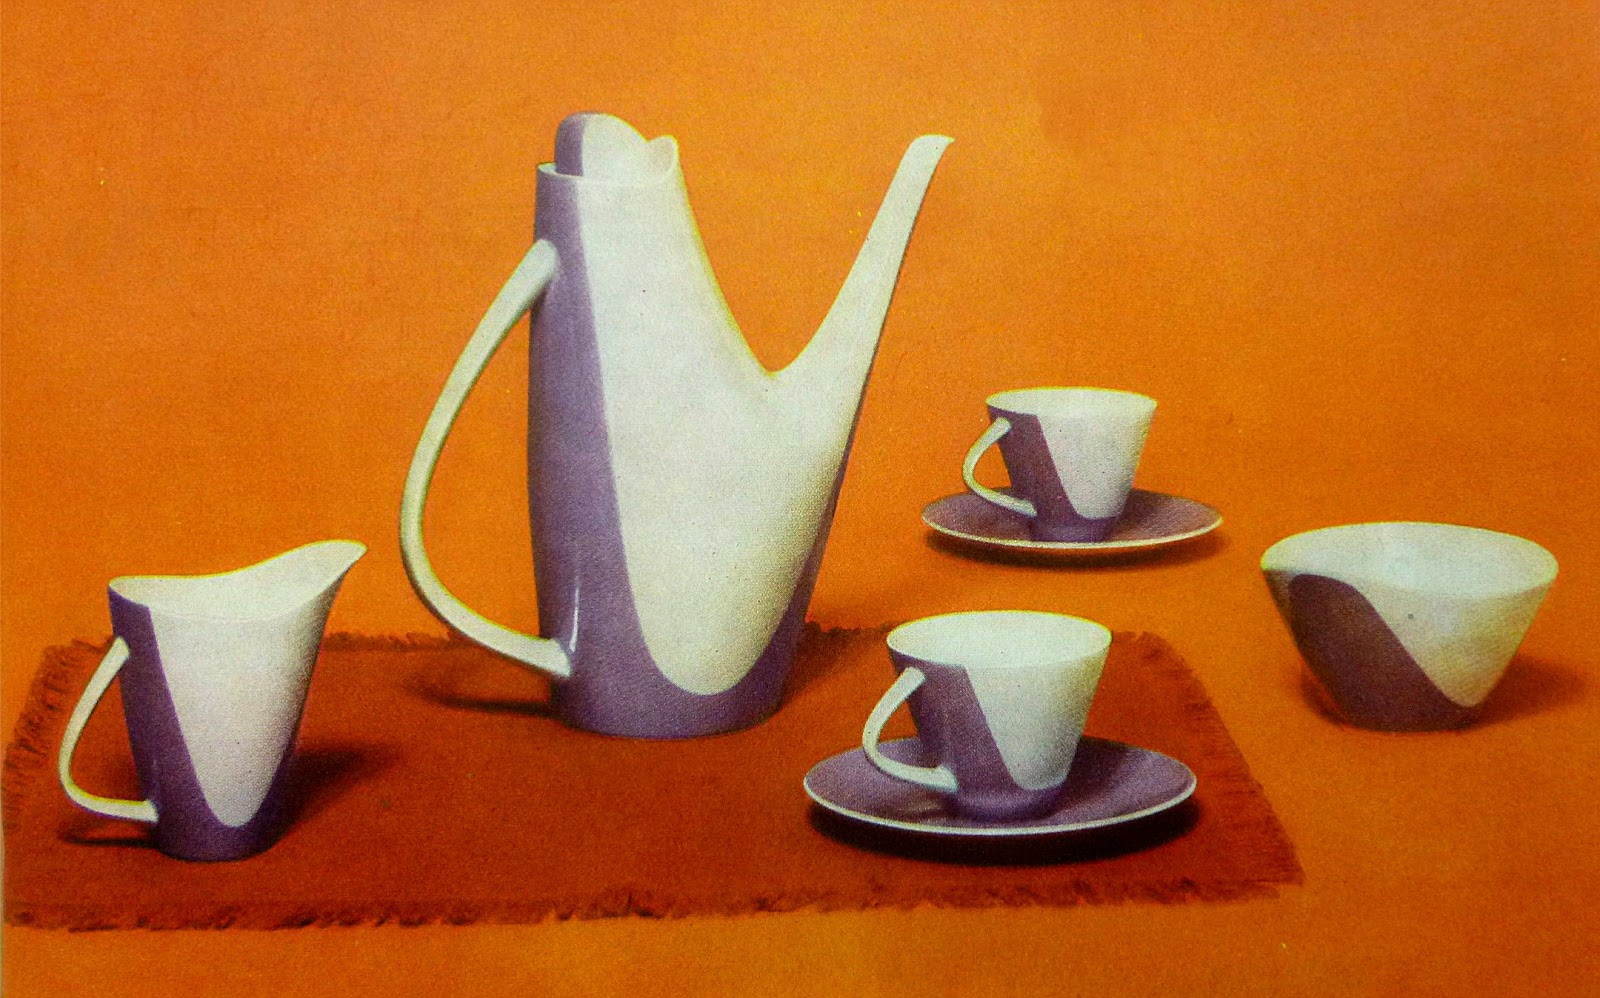 czechoslovak_glass_retro_tea_set_3